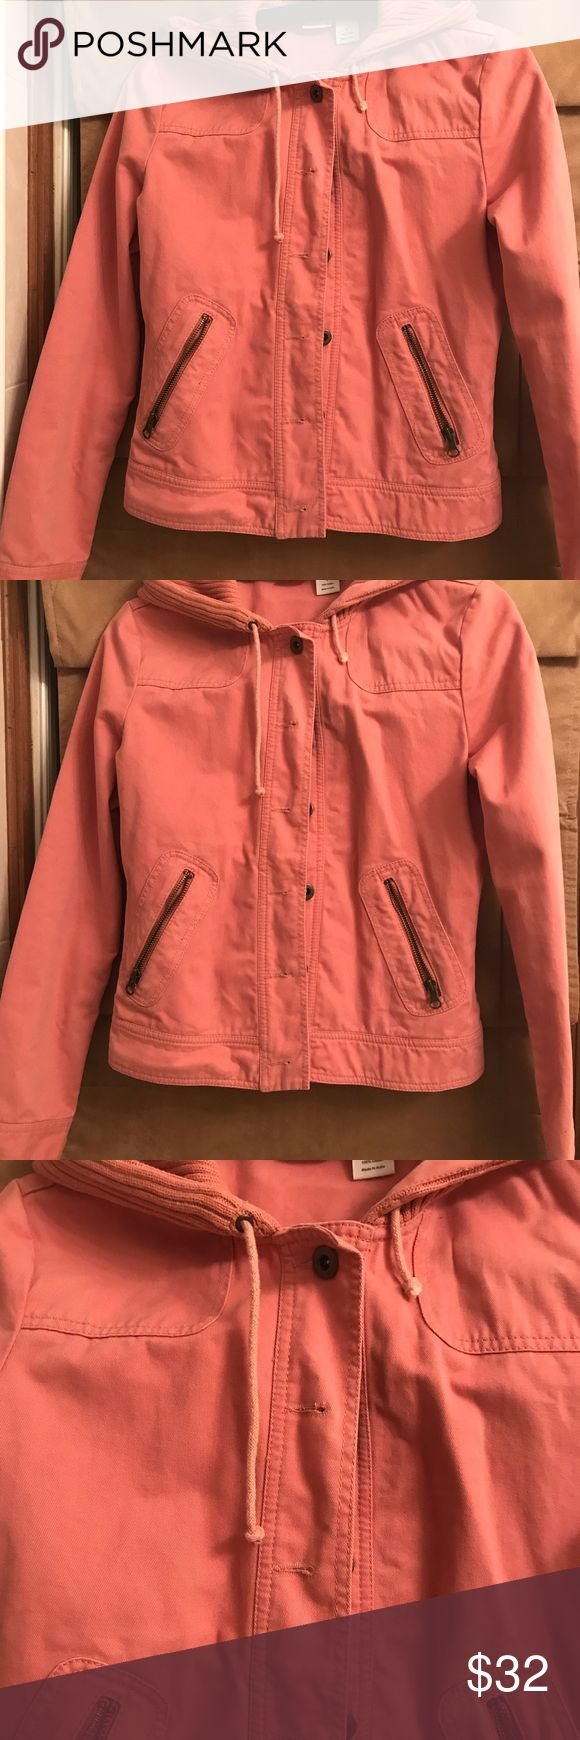 Rubbish women's pink jean jacket with hood Rubbish brand ( NORDSTROM) pink jean jacket with ribbed cotton hood. I love this jacket, I wore it once opened, can't wear it because it's not meant for someone chesty. Cute with Uggs, booties and sneakers ! Rubbish Jackets & Coats Jean Jackets